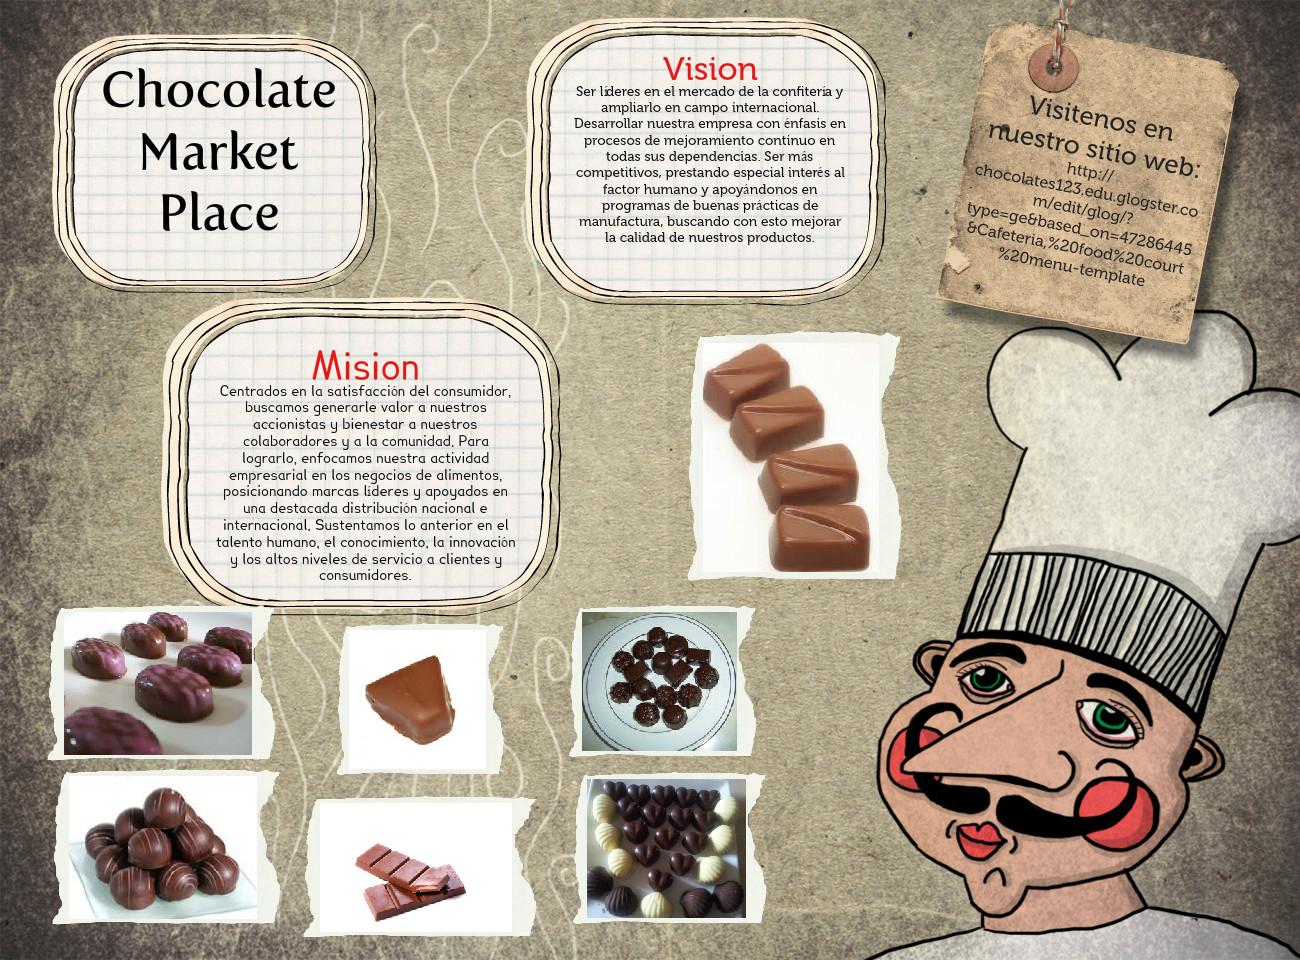 Chocolate Market Place